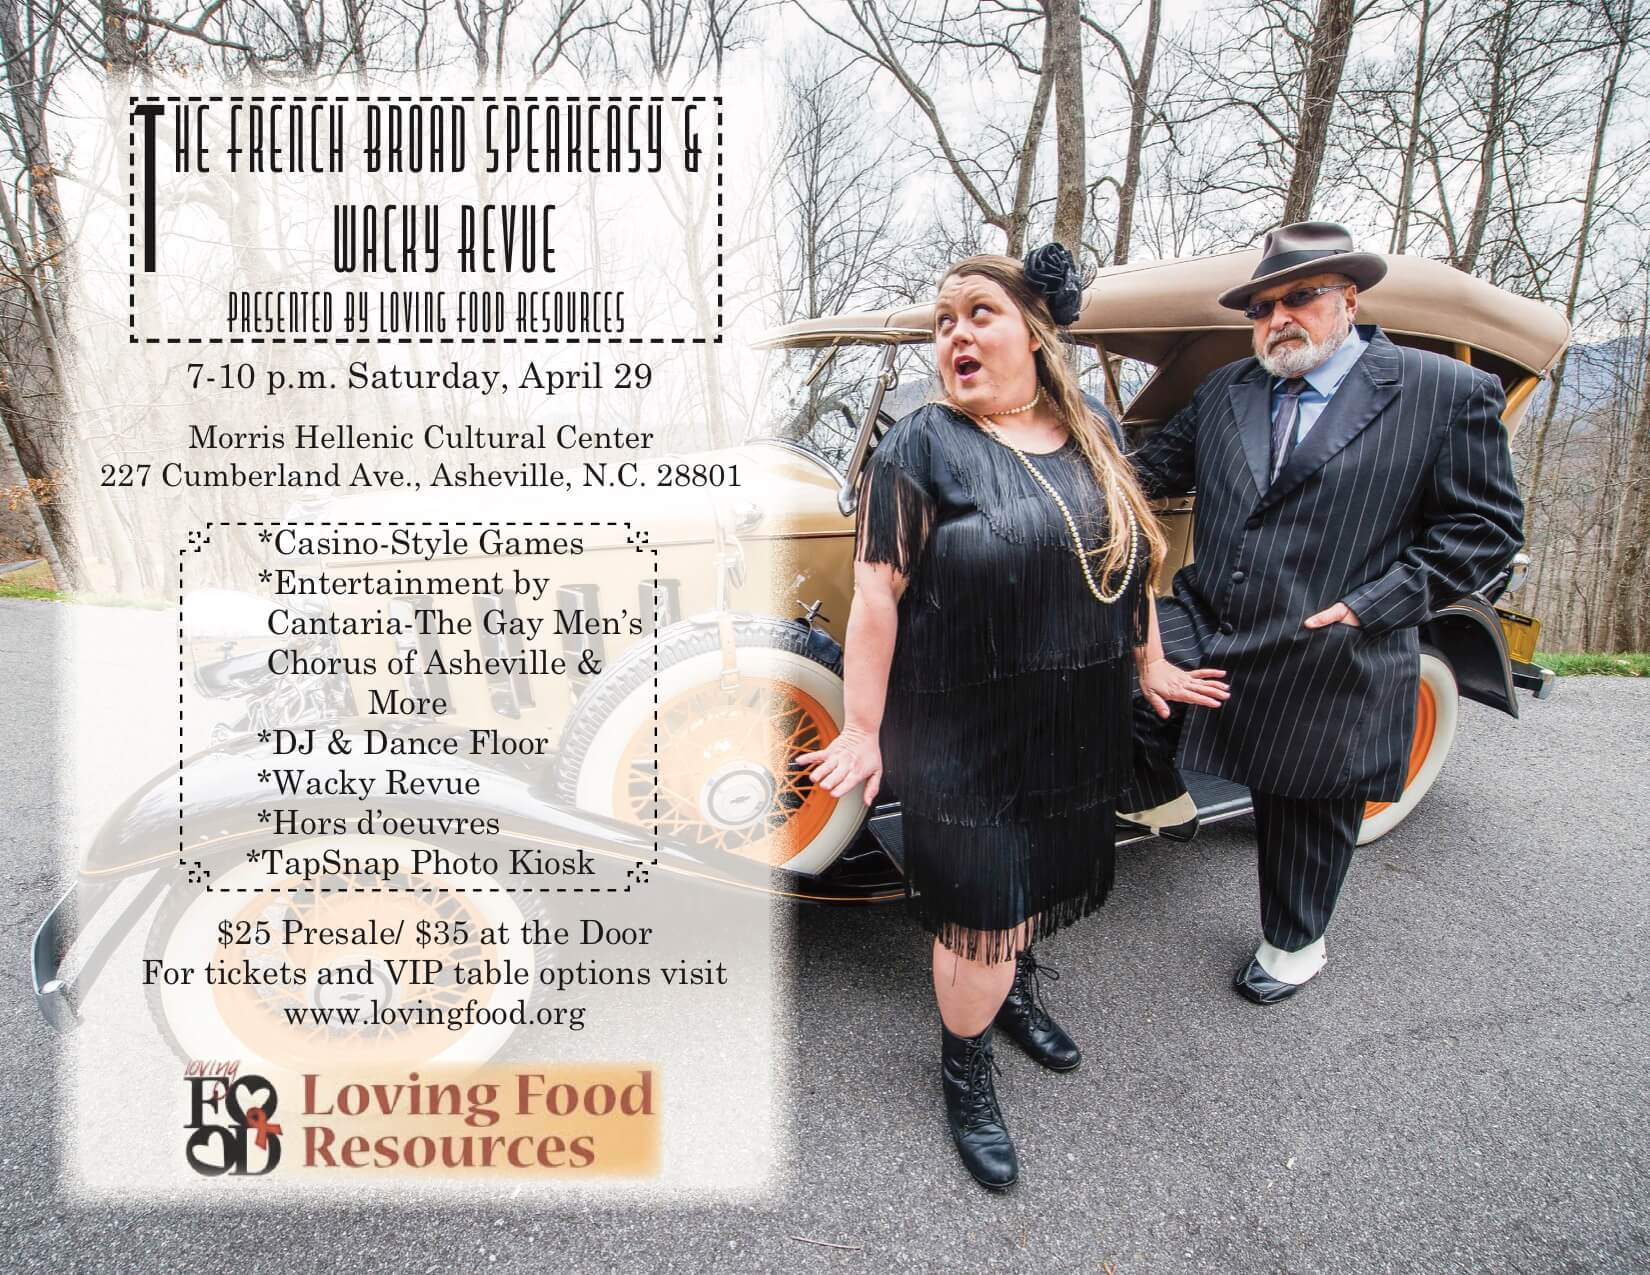 French Broad Speakeasy and Wacky Revue